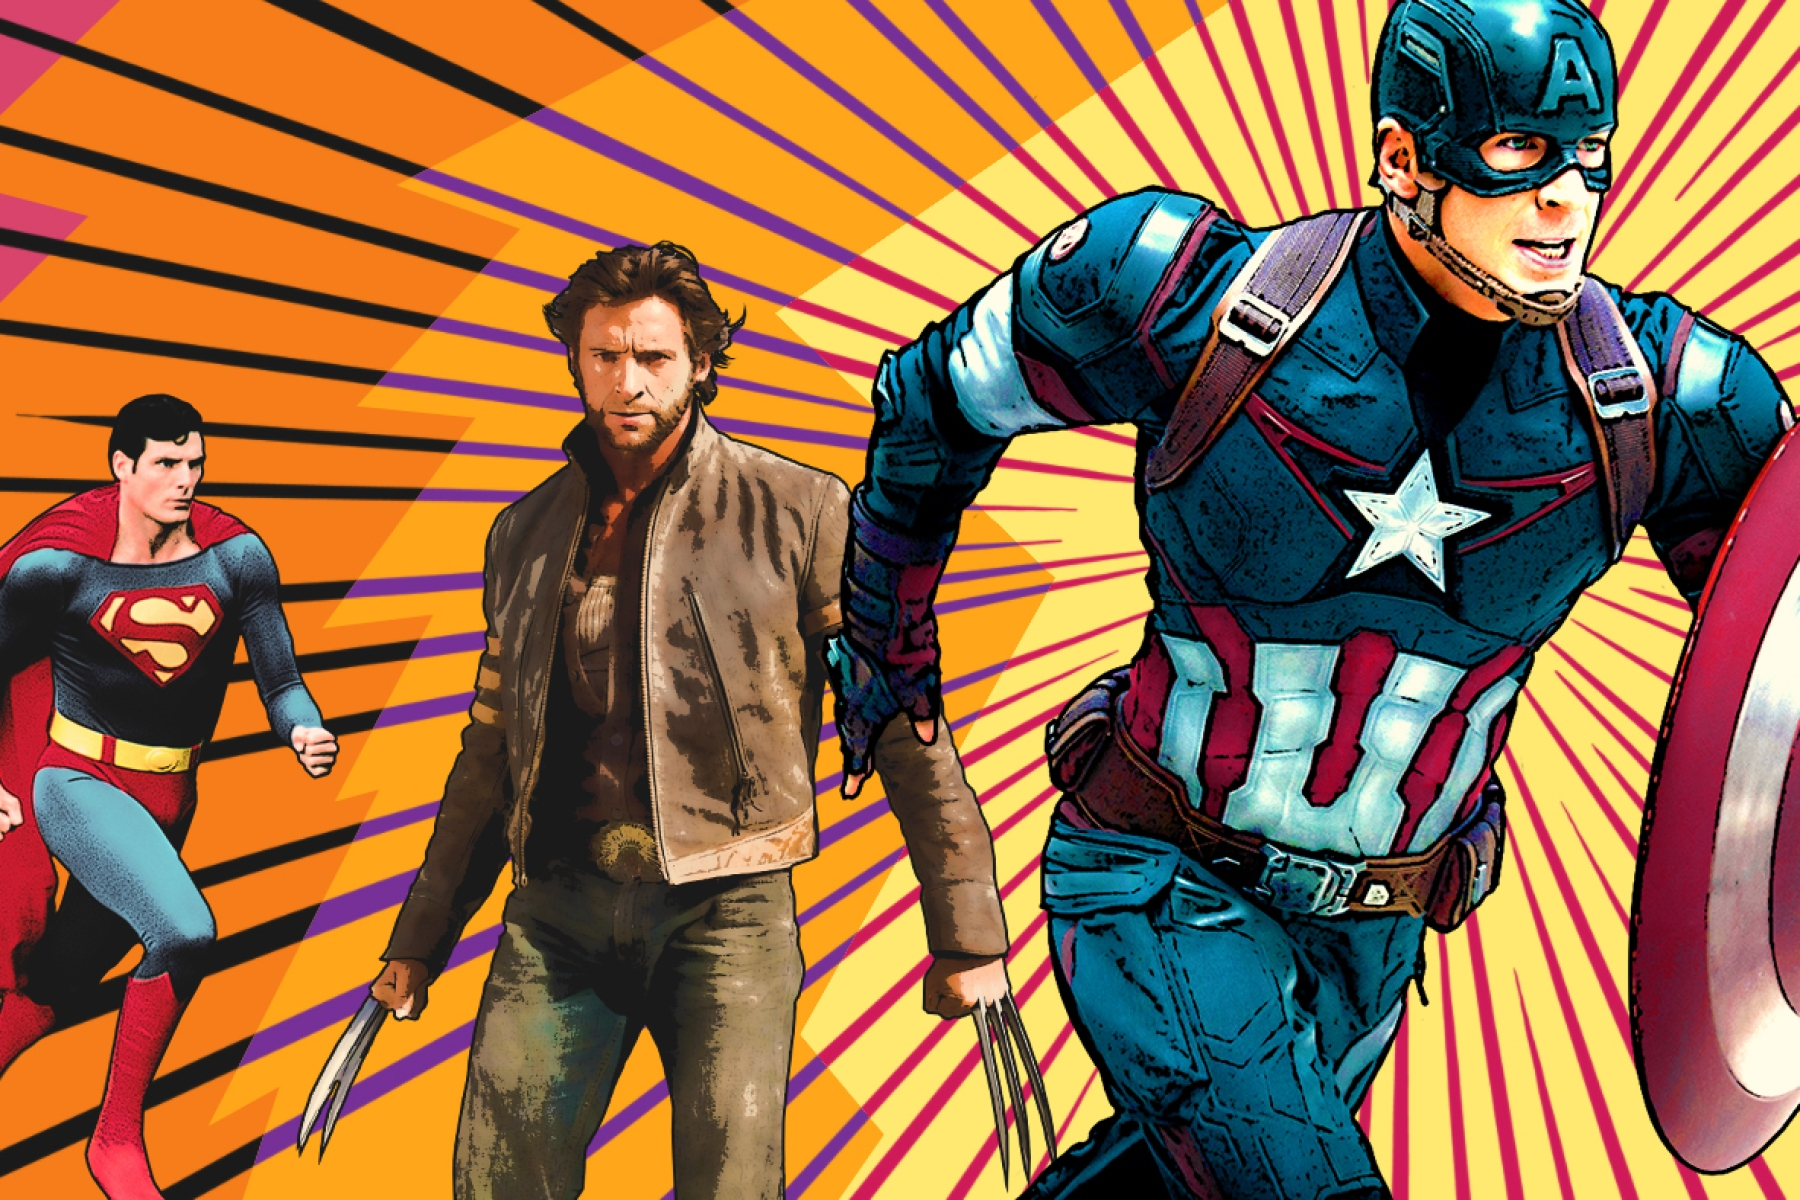 Avengers Parody Porn Subtitulos from avengers to x-men: a brief history of superhero movies